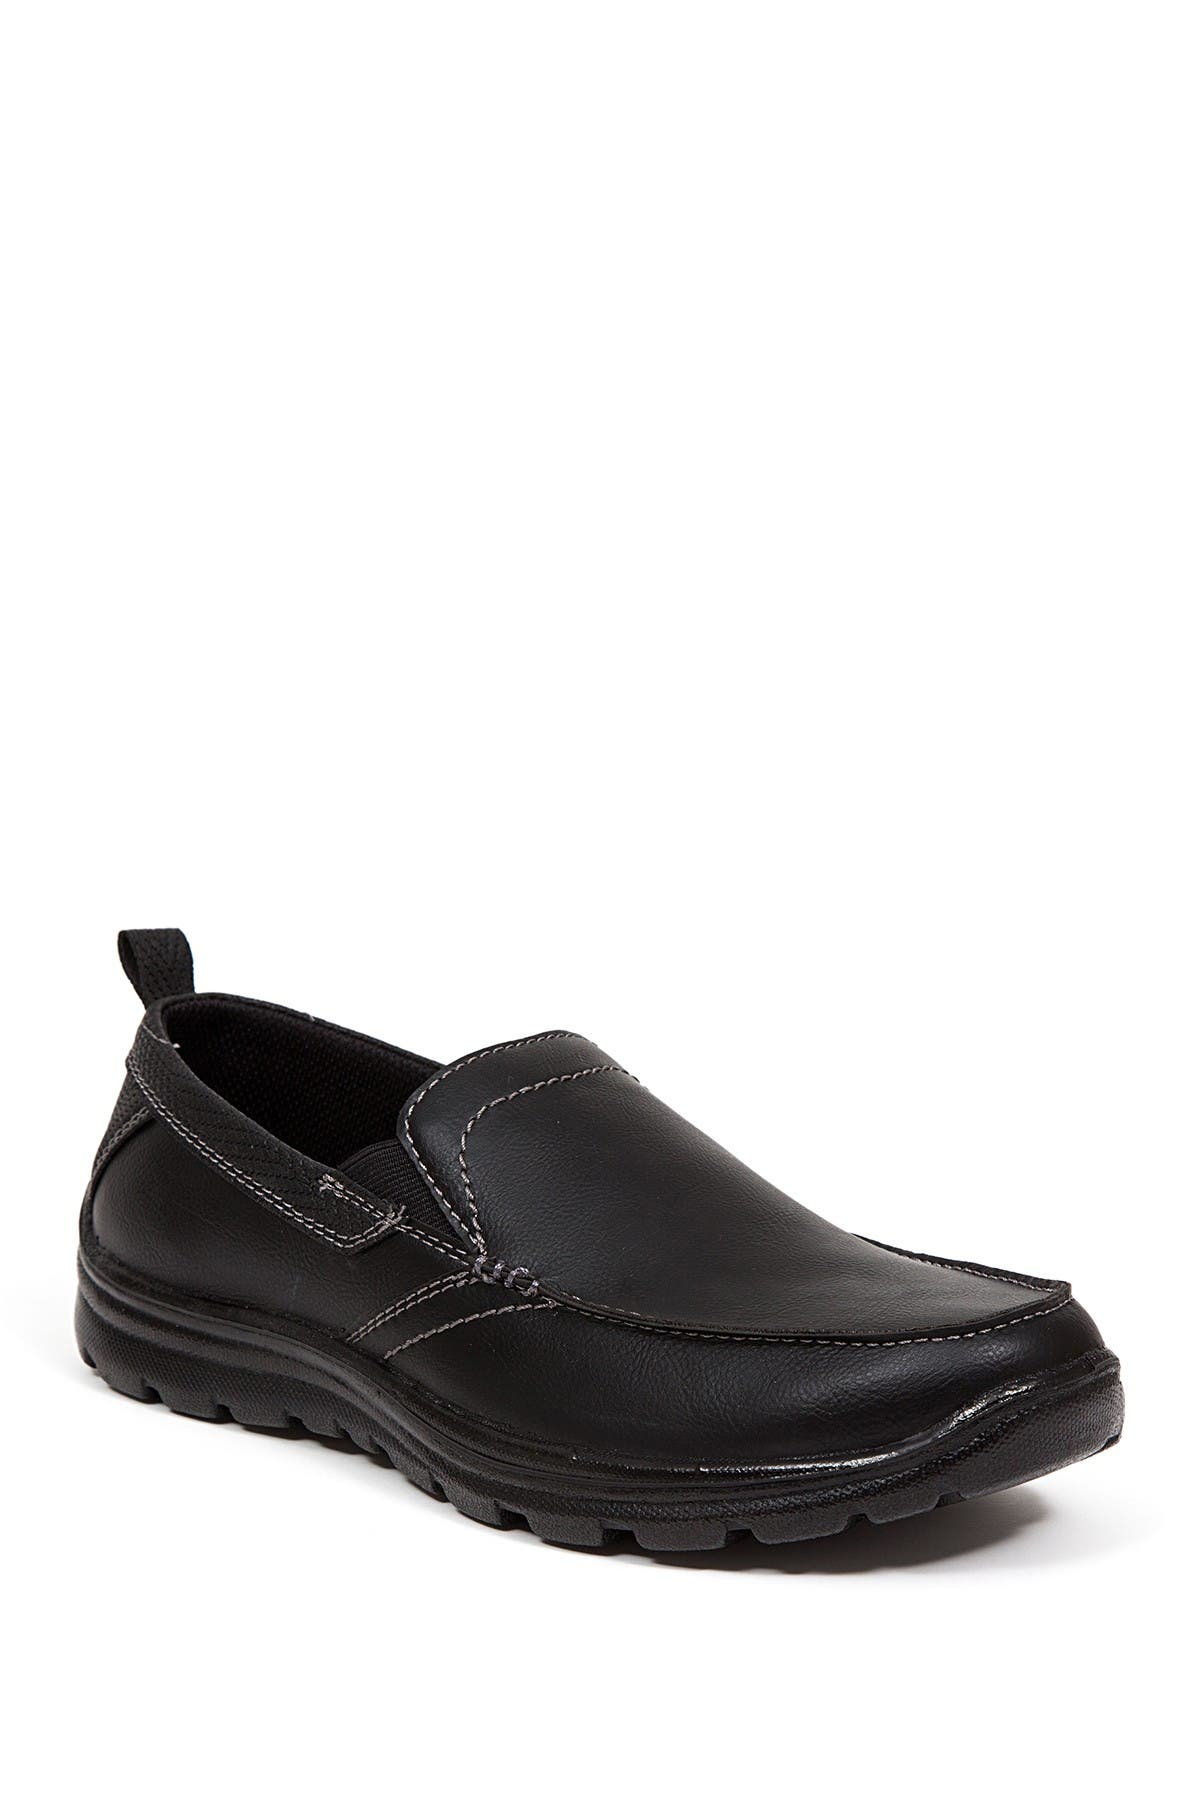 Image of Deer Stags Everest2 Slip-On Loafer - Wide Width Available